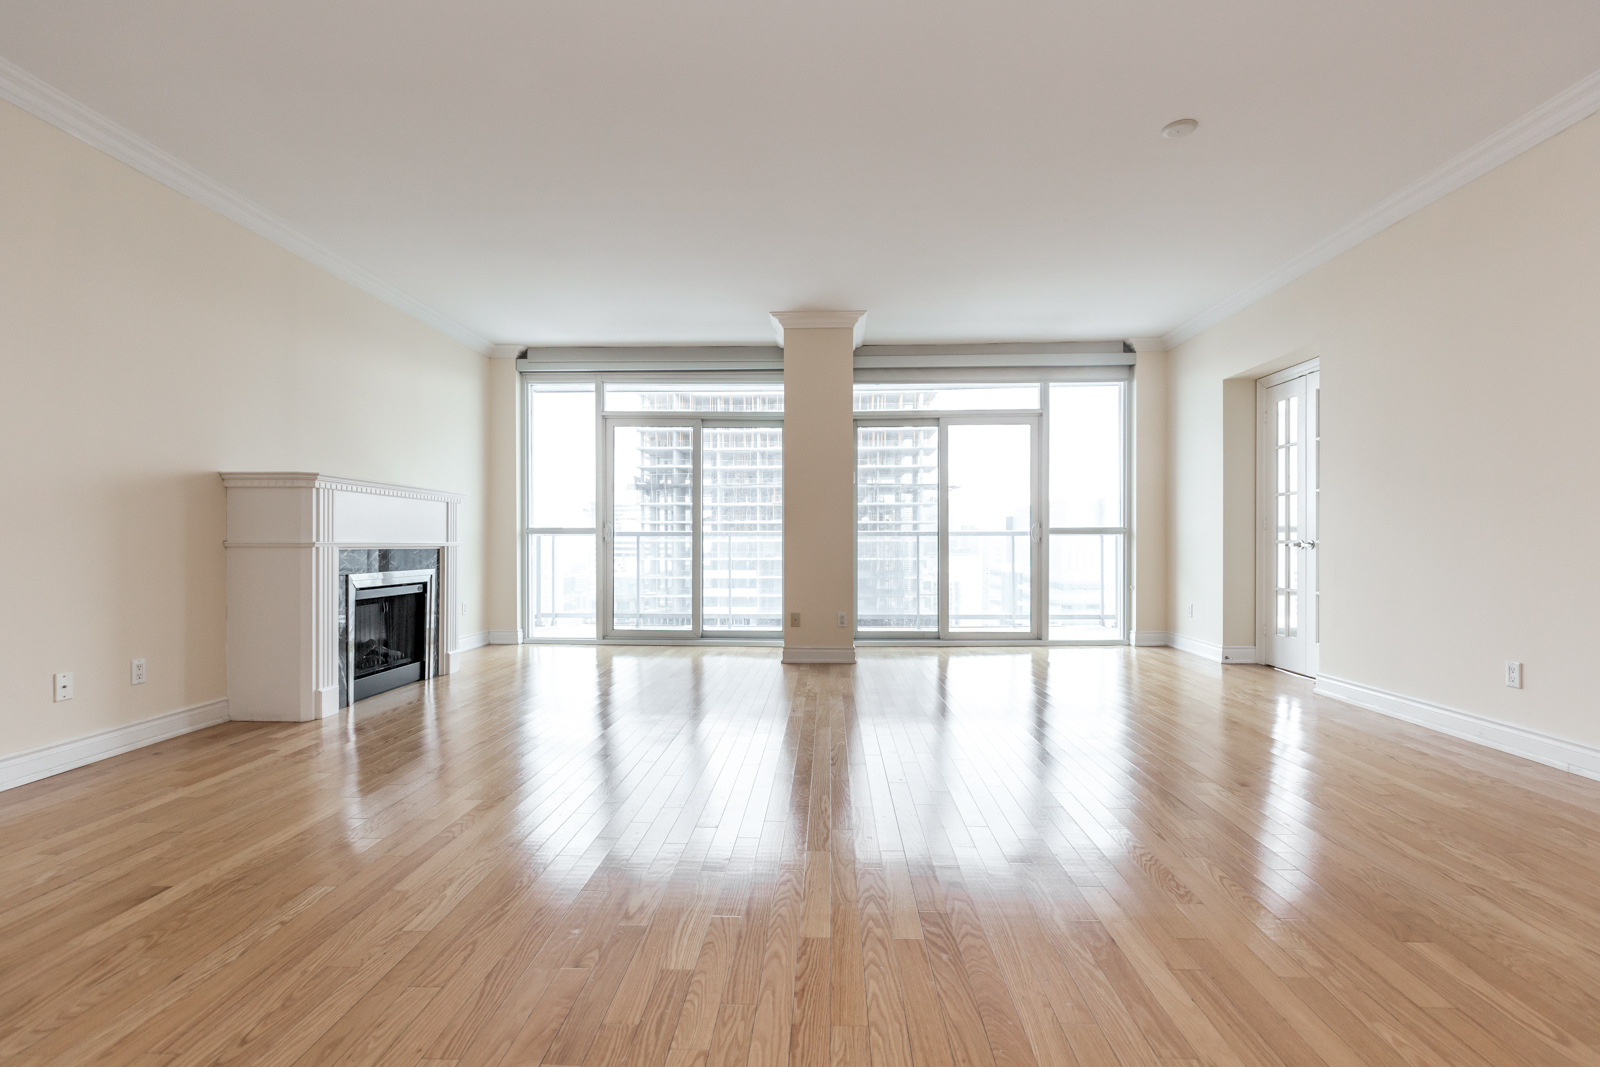 Photo of 761 Bay Street showing off its space and hardwood floors. And, first of all, also, another, furthermore, finally, in addition because, so, due to, while, since, and therefore good.